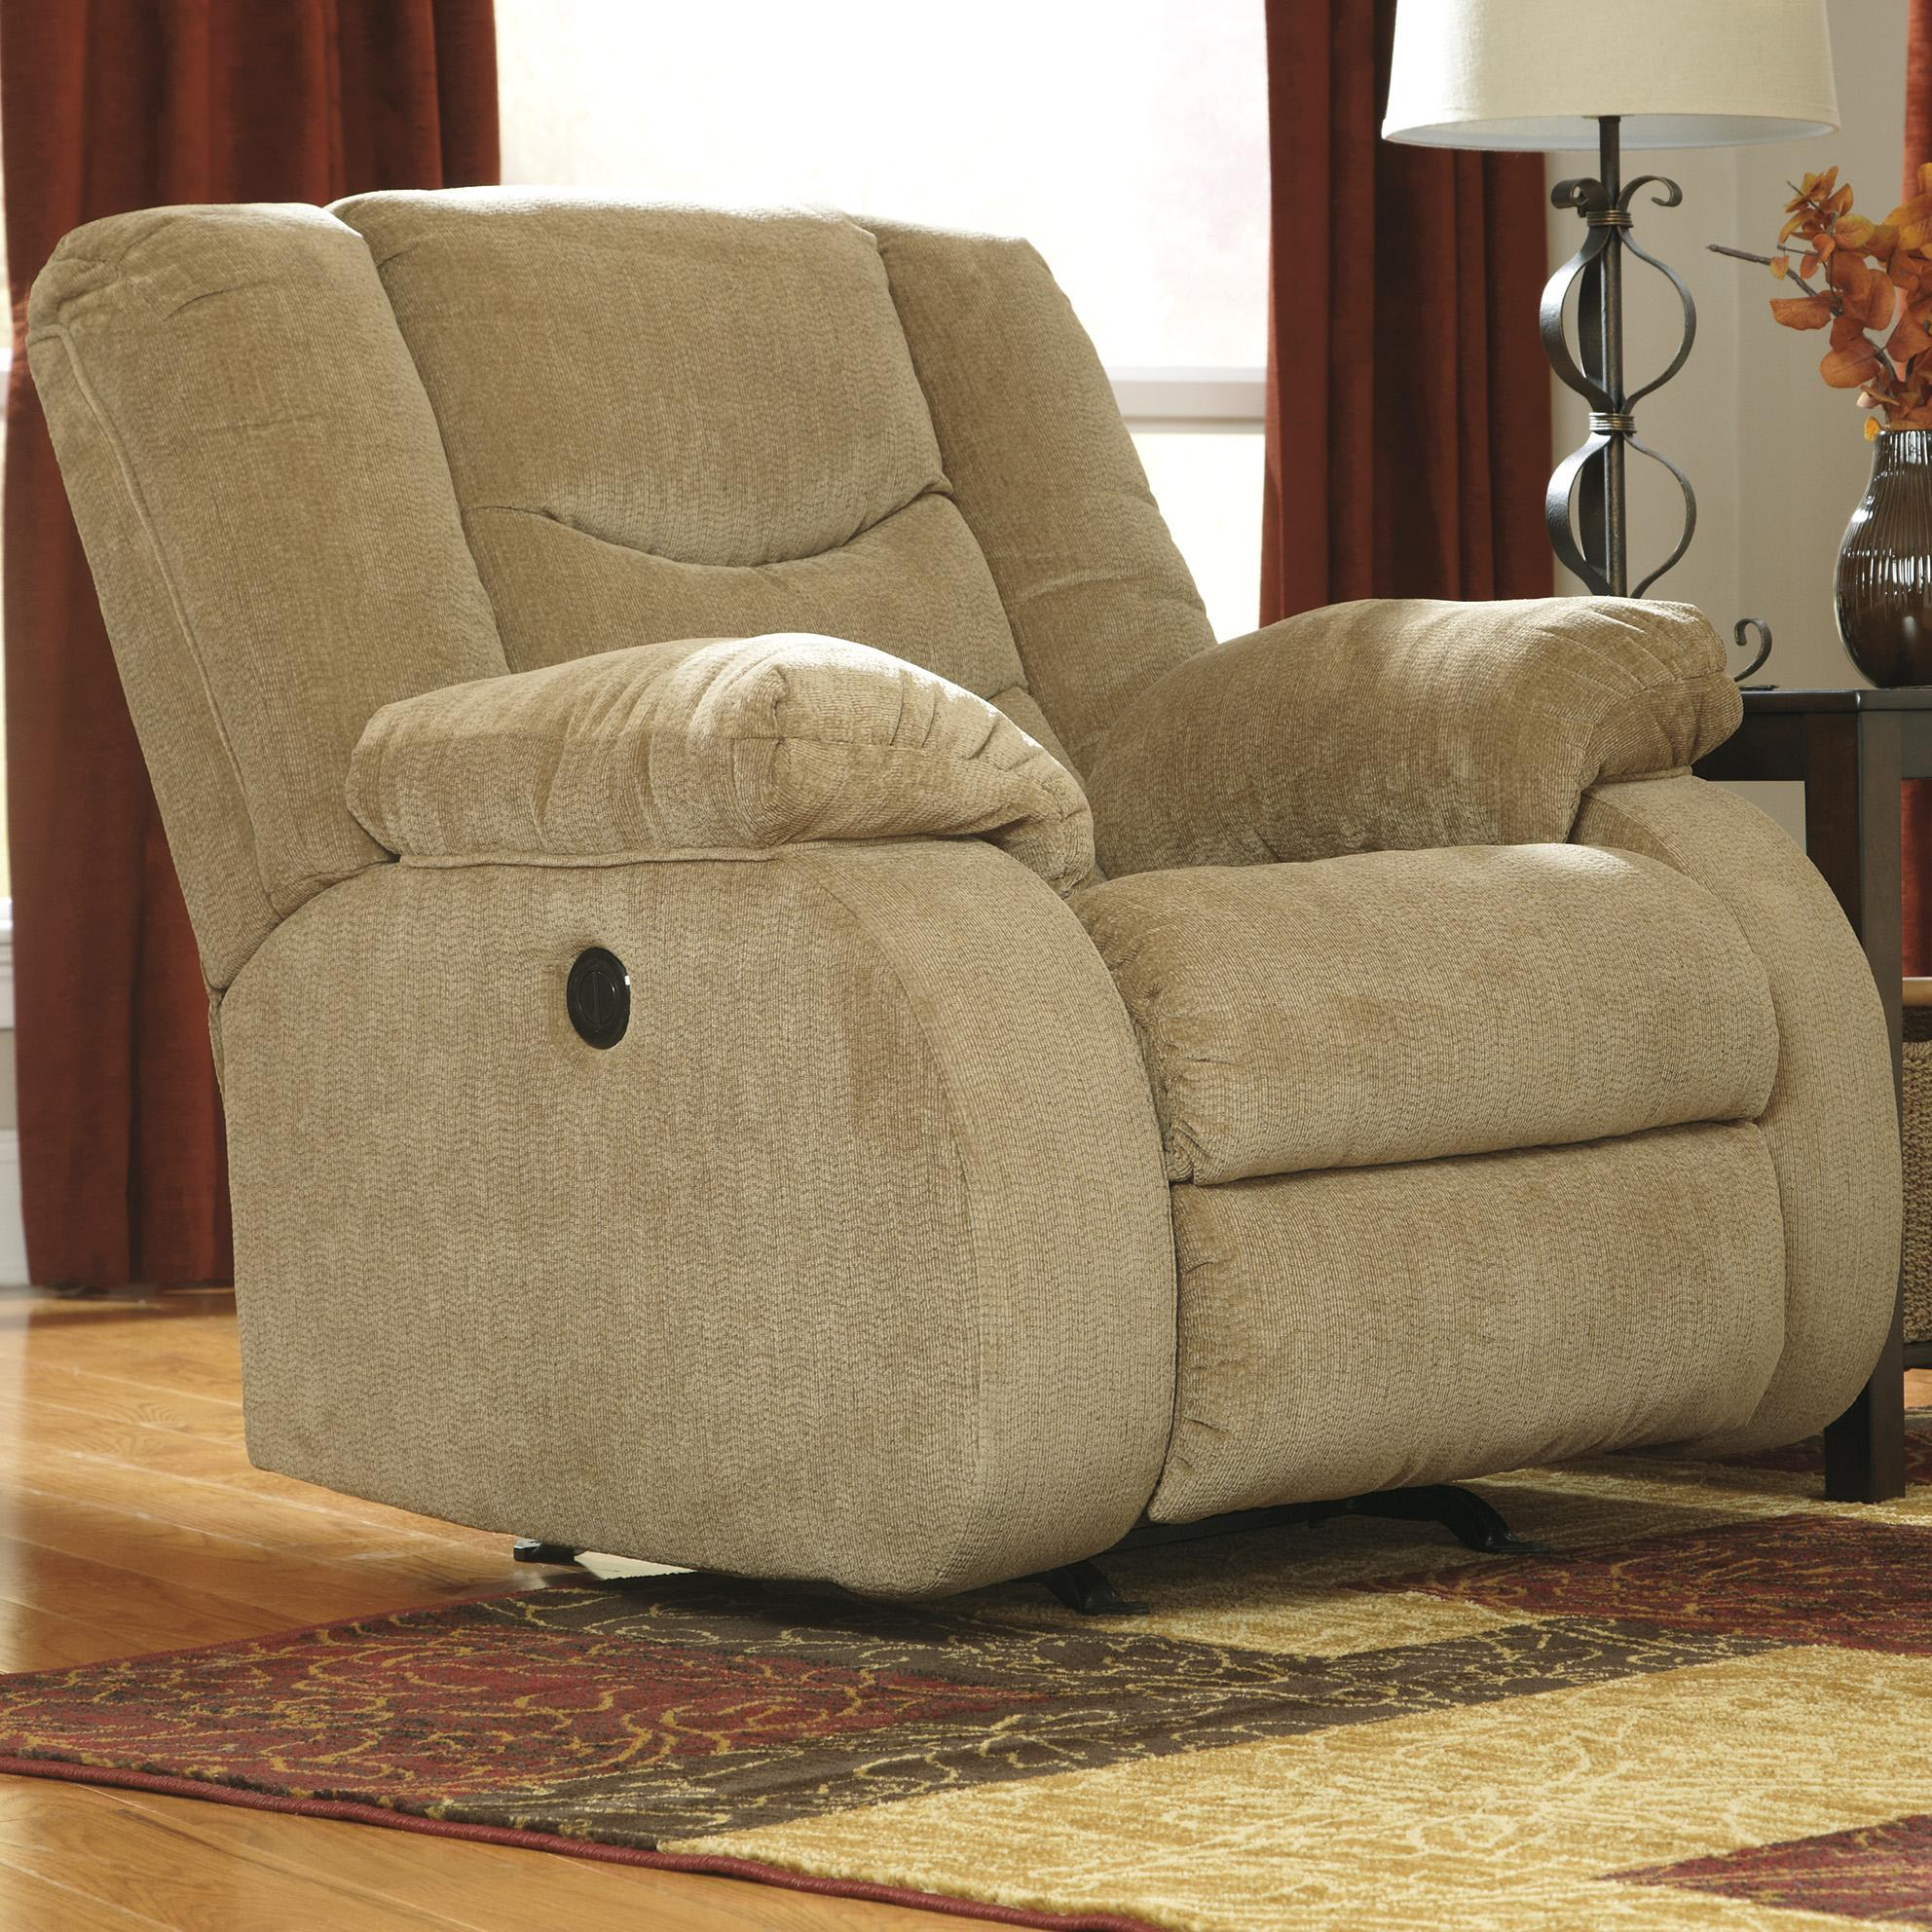 Signature Design by Ashley Garek - Sand Rocker Recliner - Item Number: 9200225